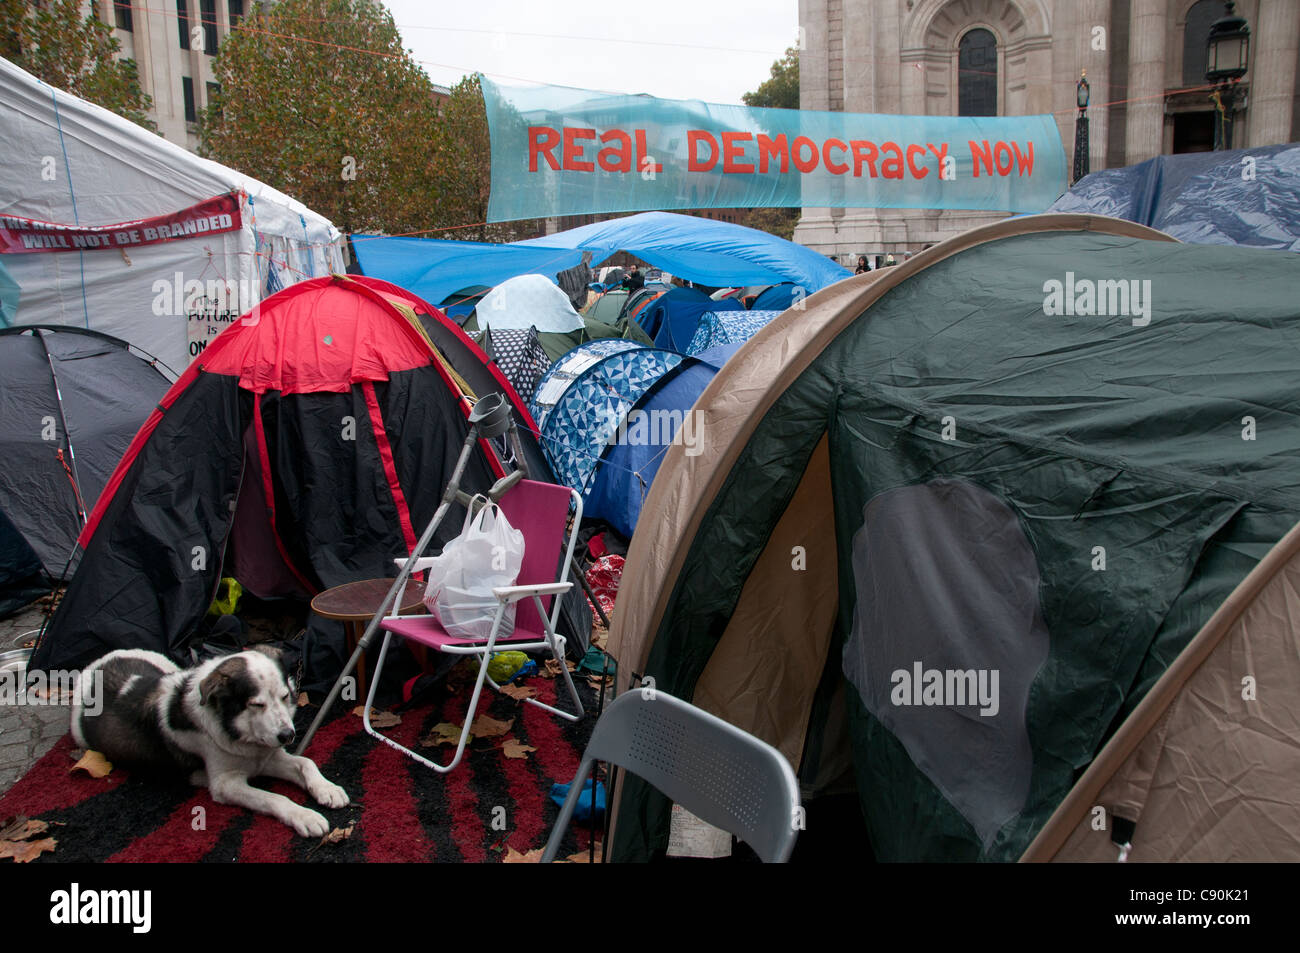 Occupy London. St Paul's. Protest against the city and banks. Dog resting in front of a tent - Stock Image